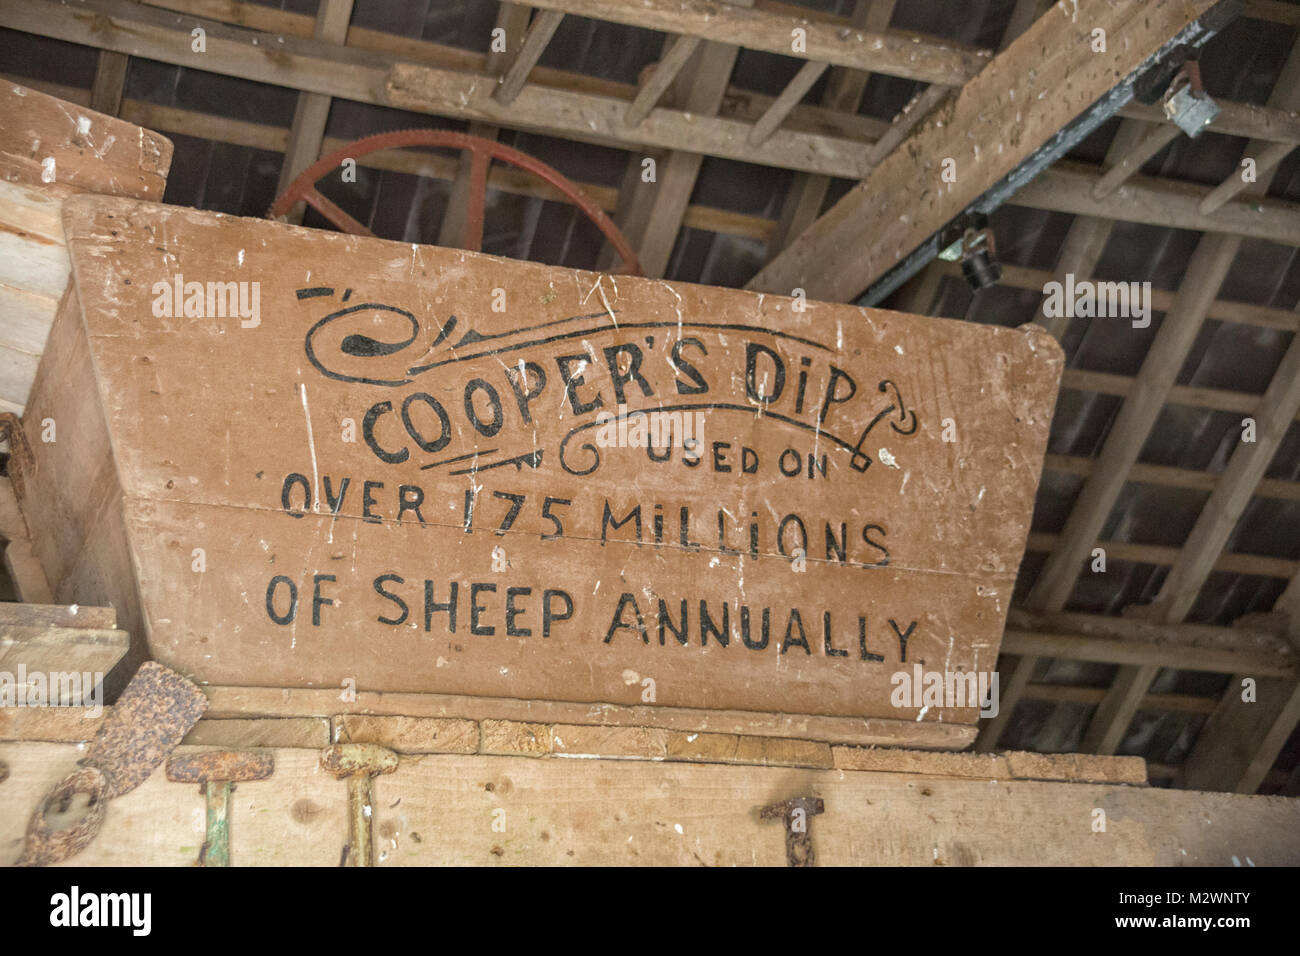 Cooper's dip is one of the best ancient sheep dips made in England in 1852. - Stock Image